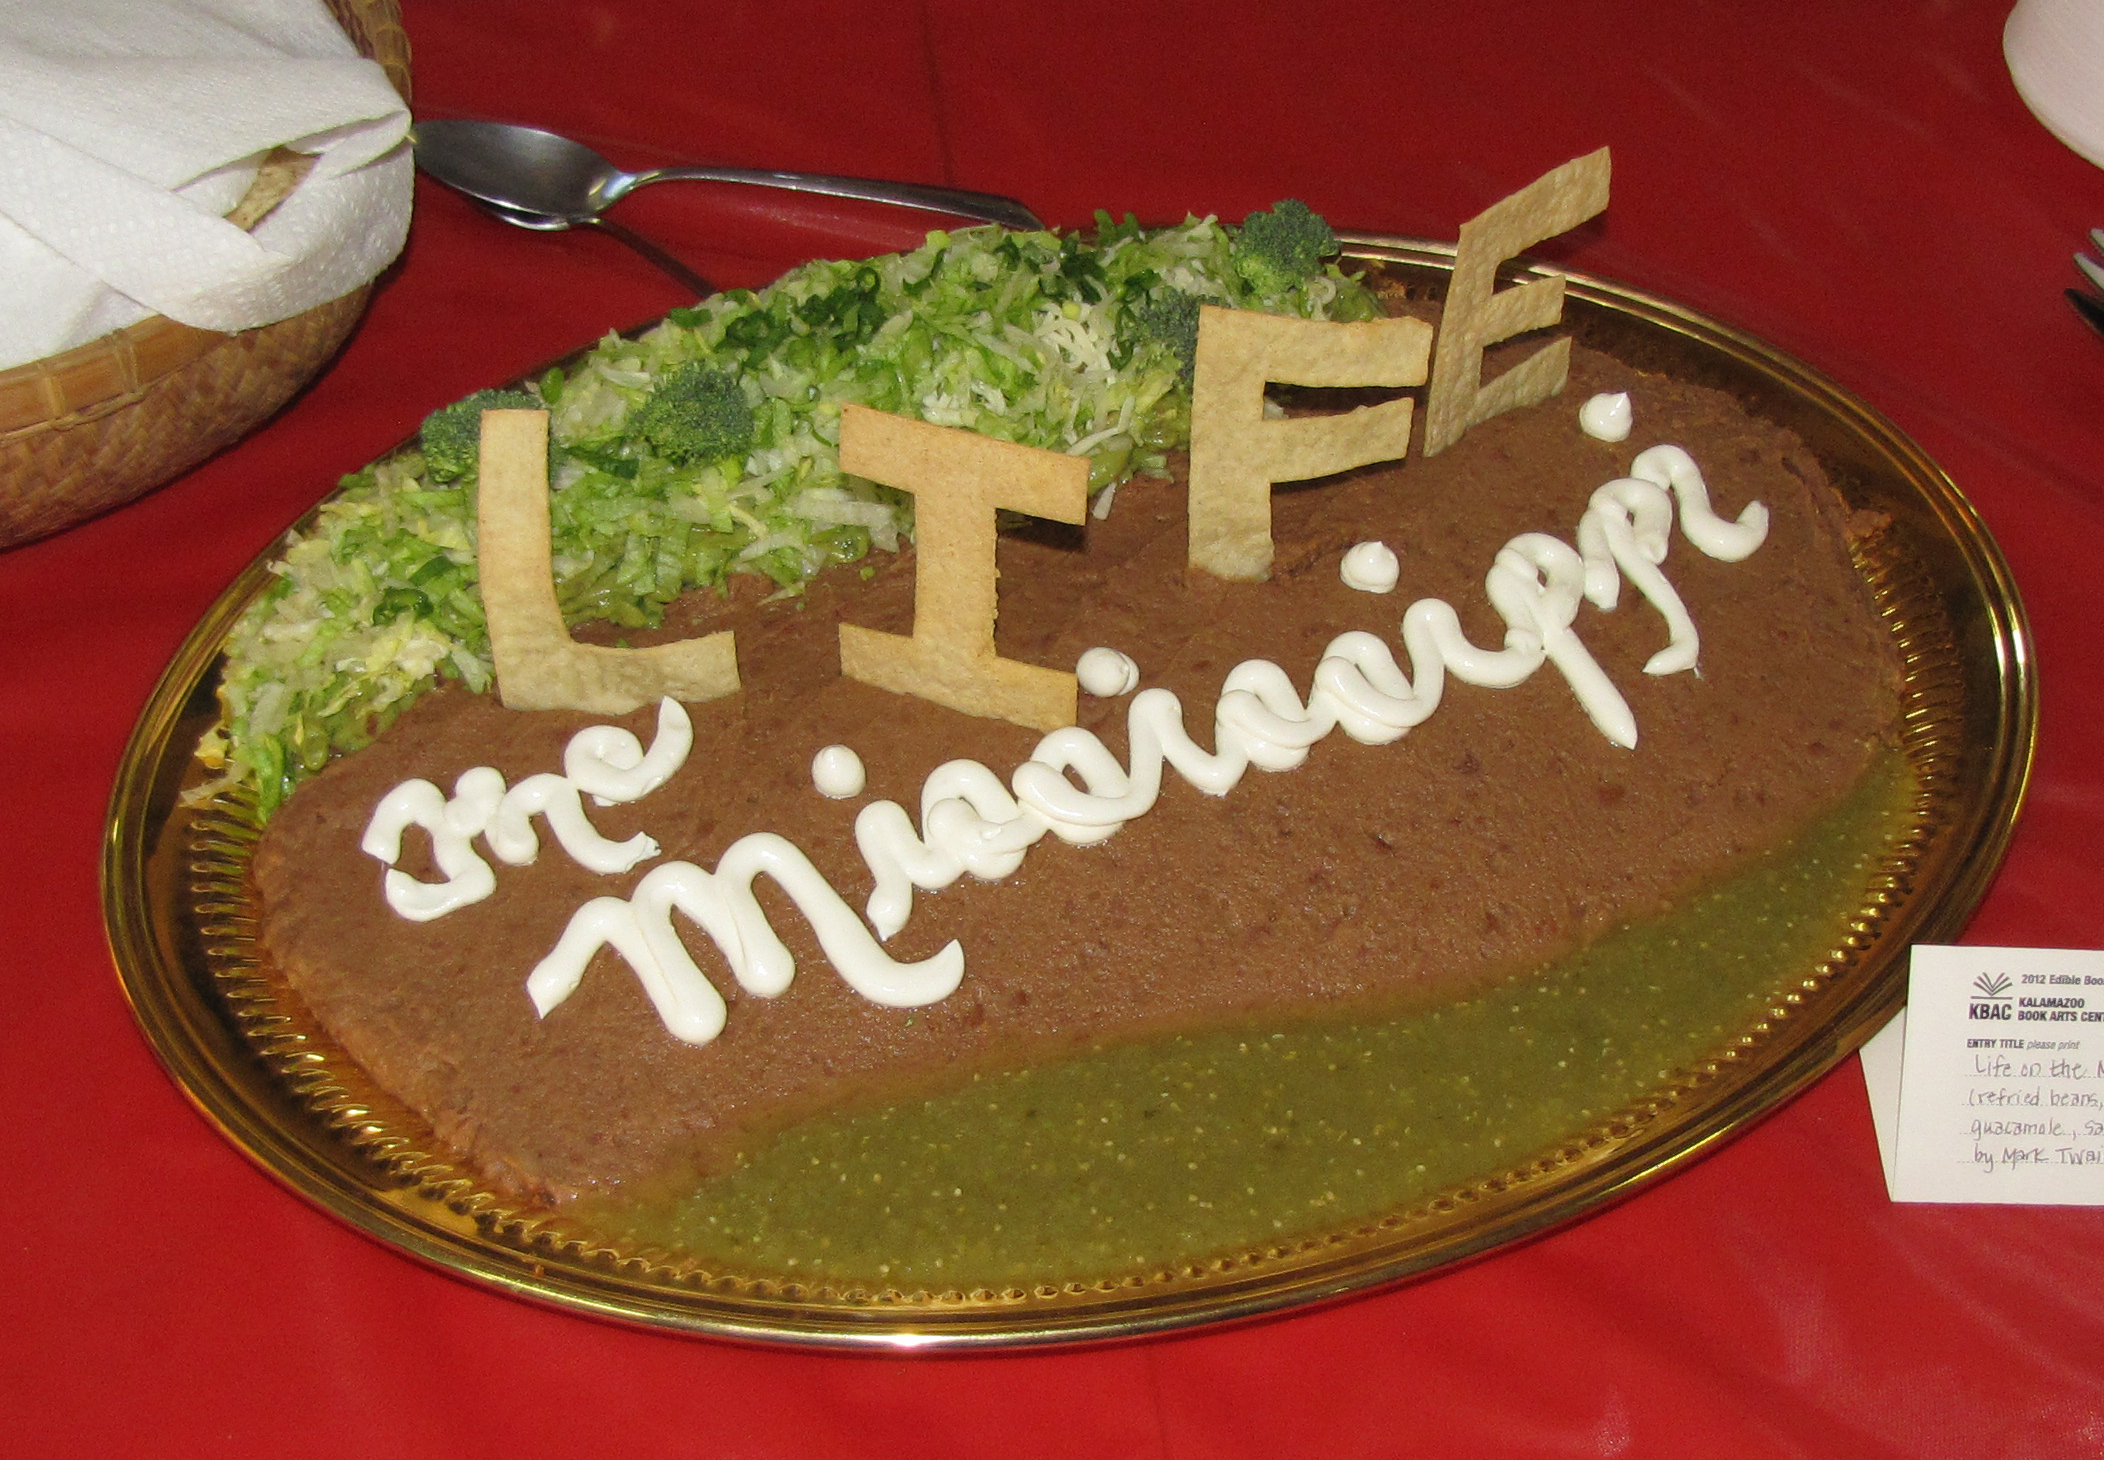 """JUDGE'S CHOICE: """"Life on the Mississippi,"""" by Mark Twain, created by Amy Ferguson, Edible Book 2012."""